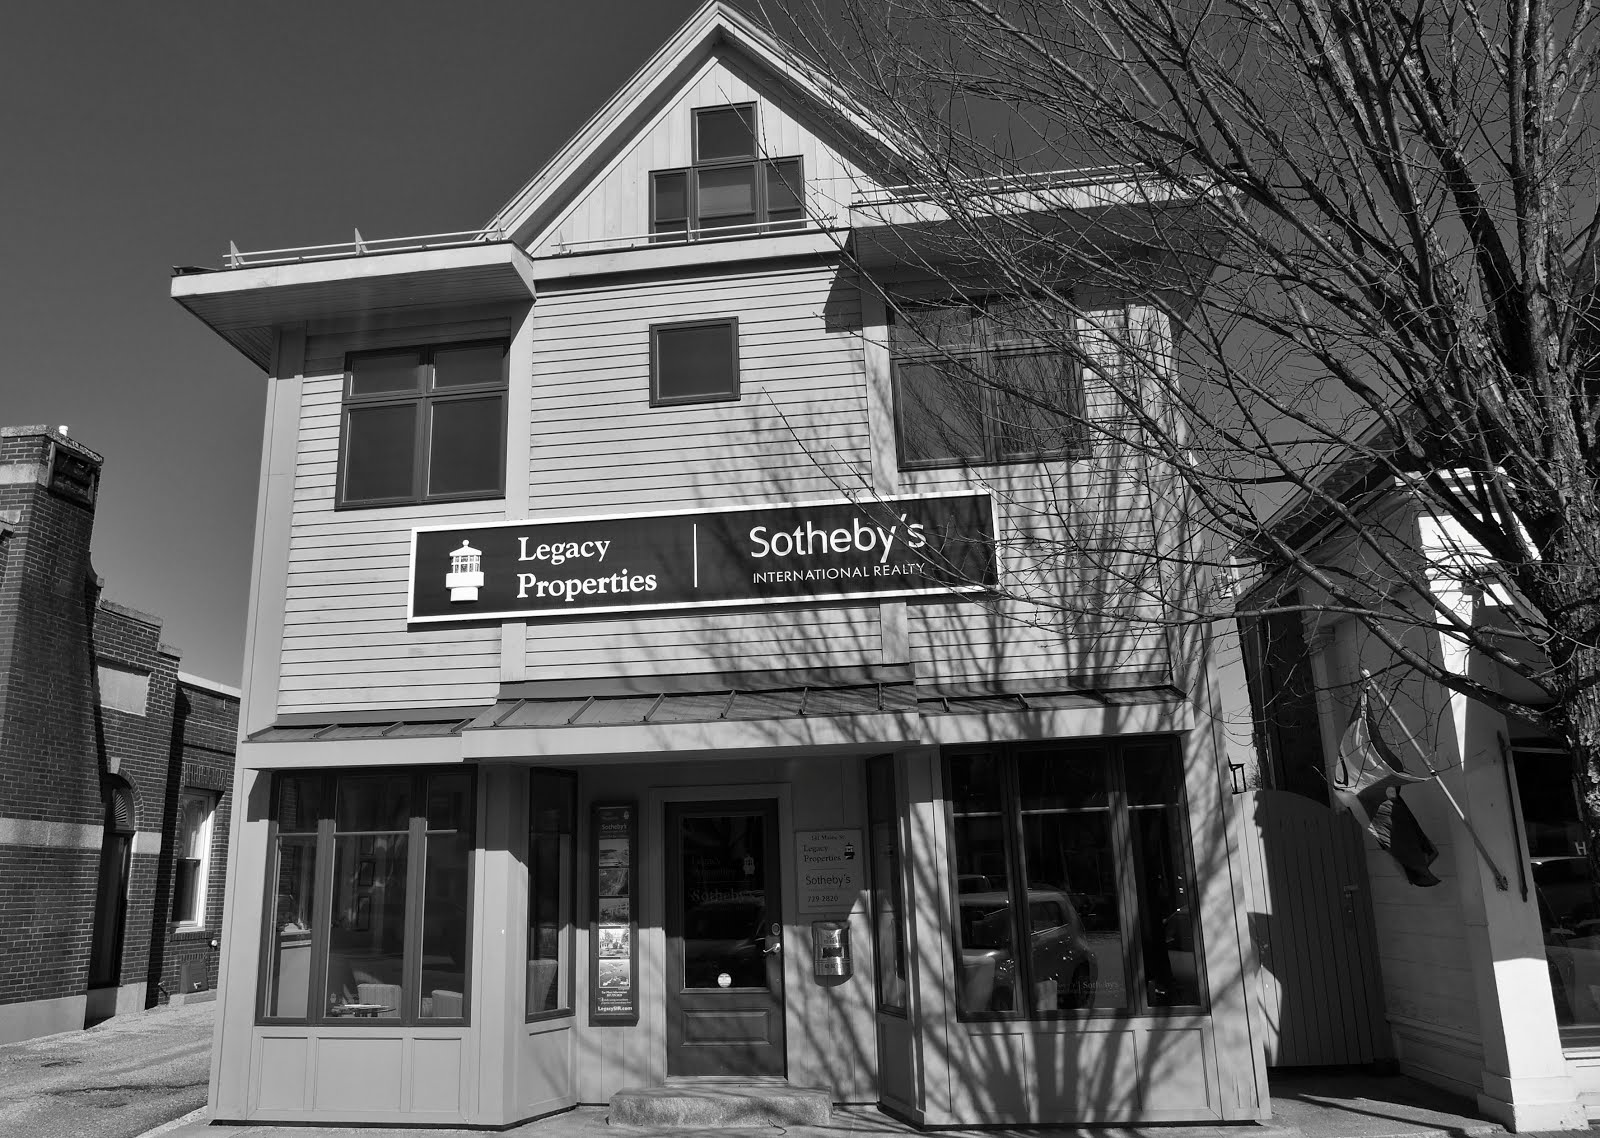 Sotheby's; An International Realtor: Brunswick, Maine